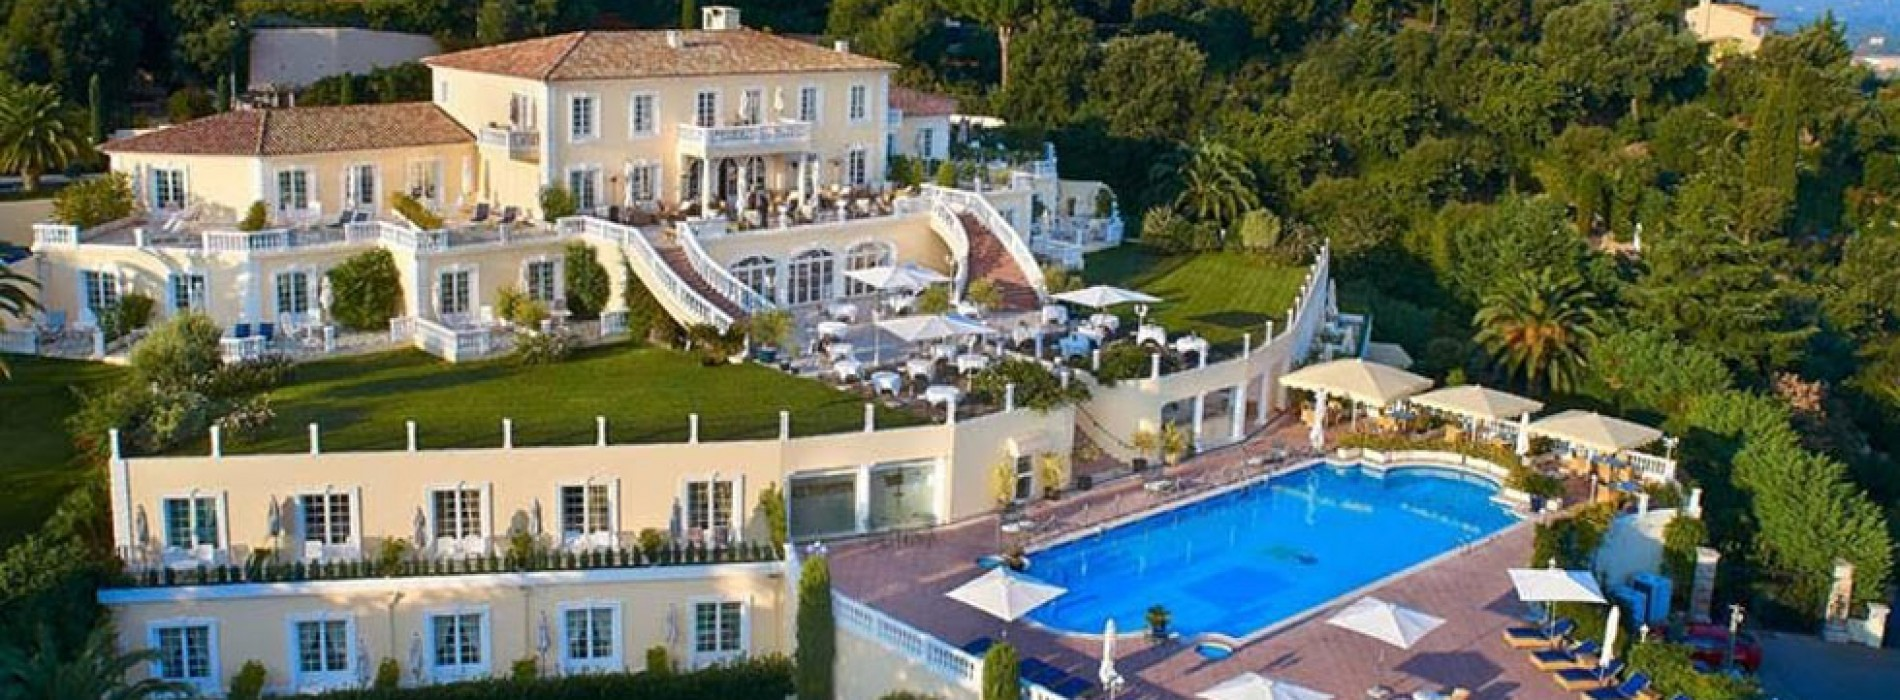 Althoff hotel villa belrose in saint tropez joins small for Small hotel of the world